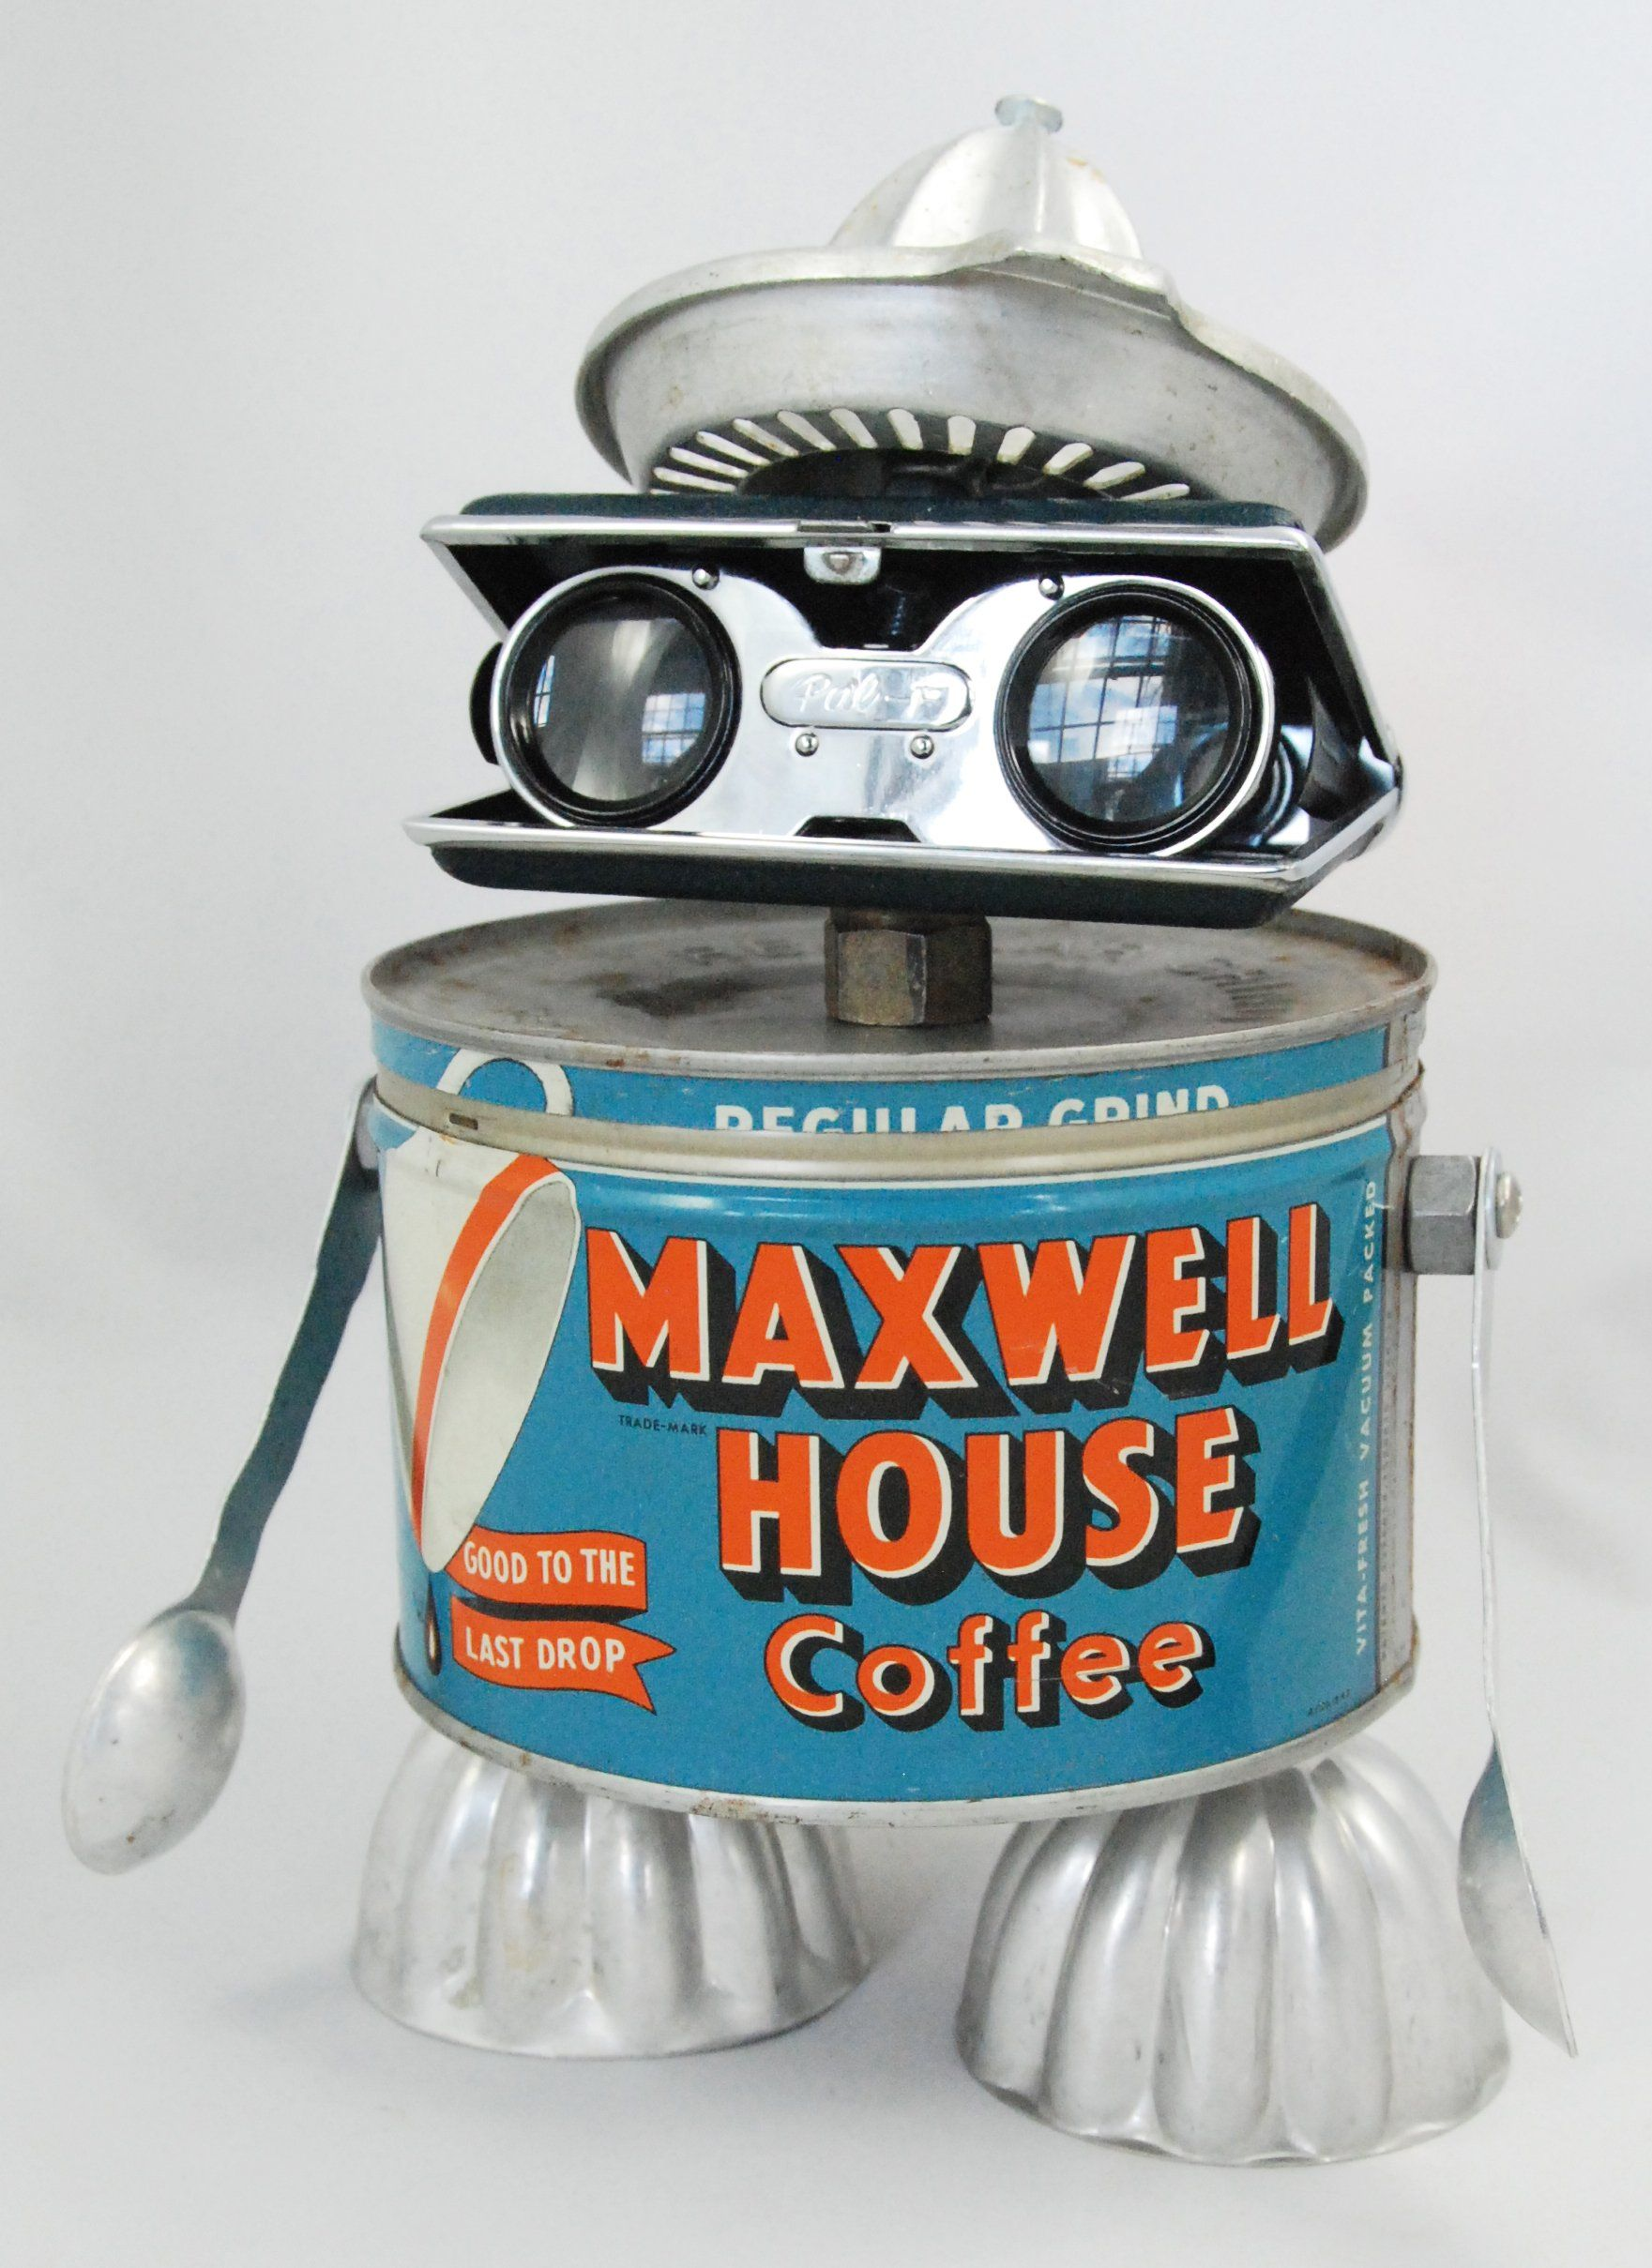 Myles Size 9 5 Inches Tall Medium Vintage Maxwell House Coffee Tin Vintage Opera Glasses Lemon Juicer Jell O Molds Vintage A Tin Can Art Maxwell House Coffee Bolts Washers